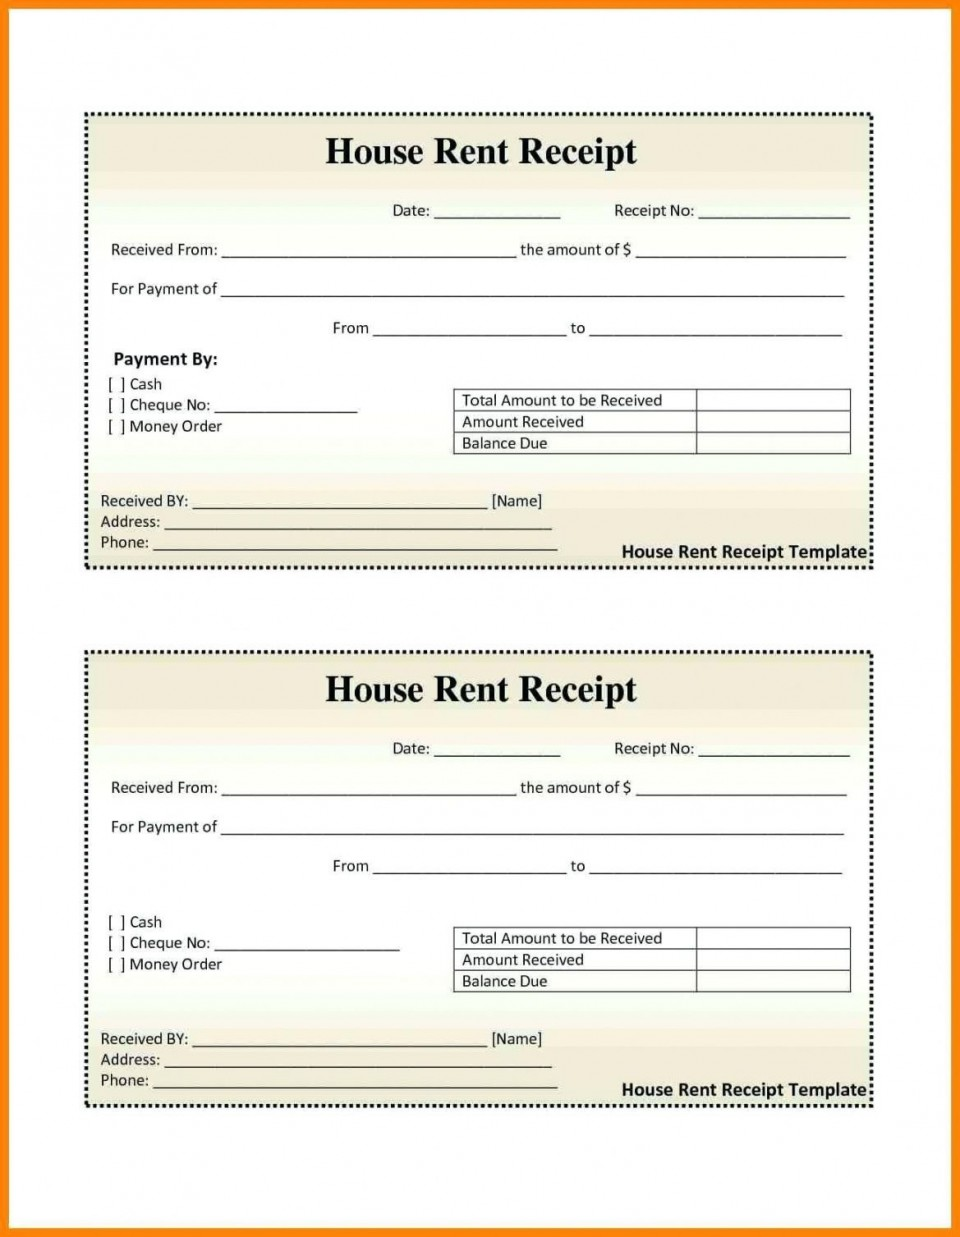 001 Remarkable House Rent Receipt Template India Doc Sample  Format Download960